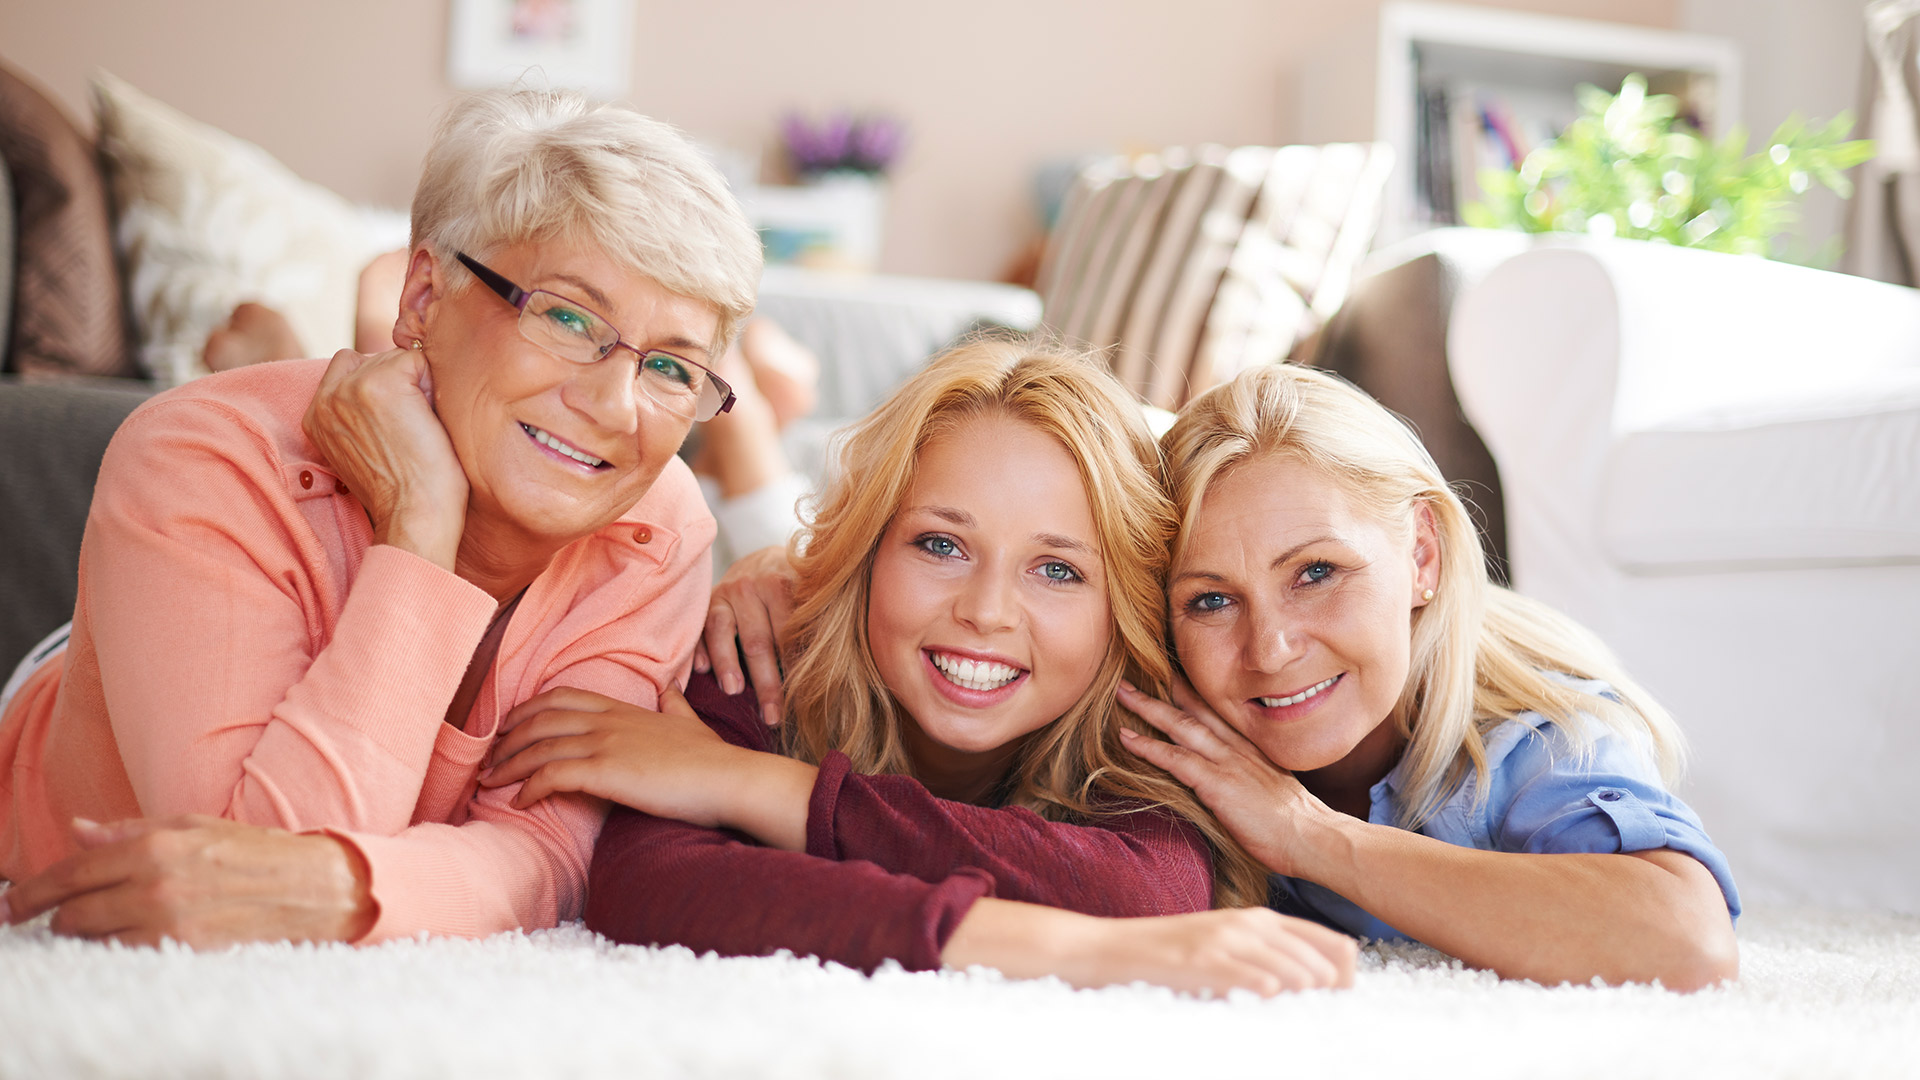 Happy teen girl with her mother and grandmother